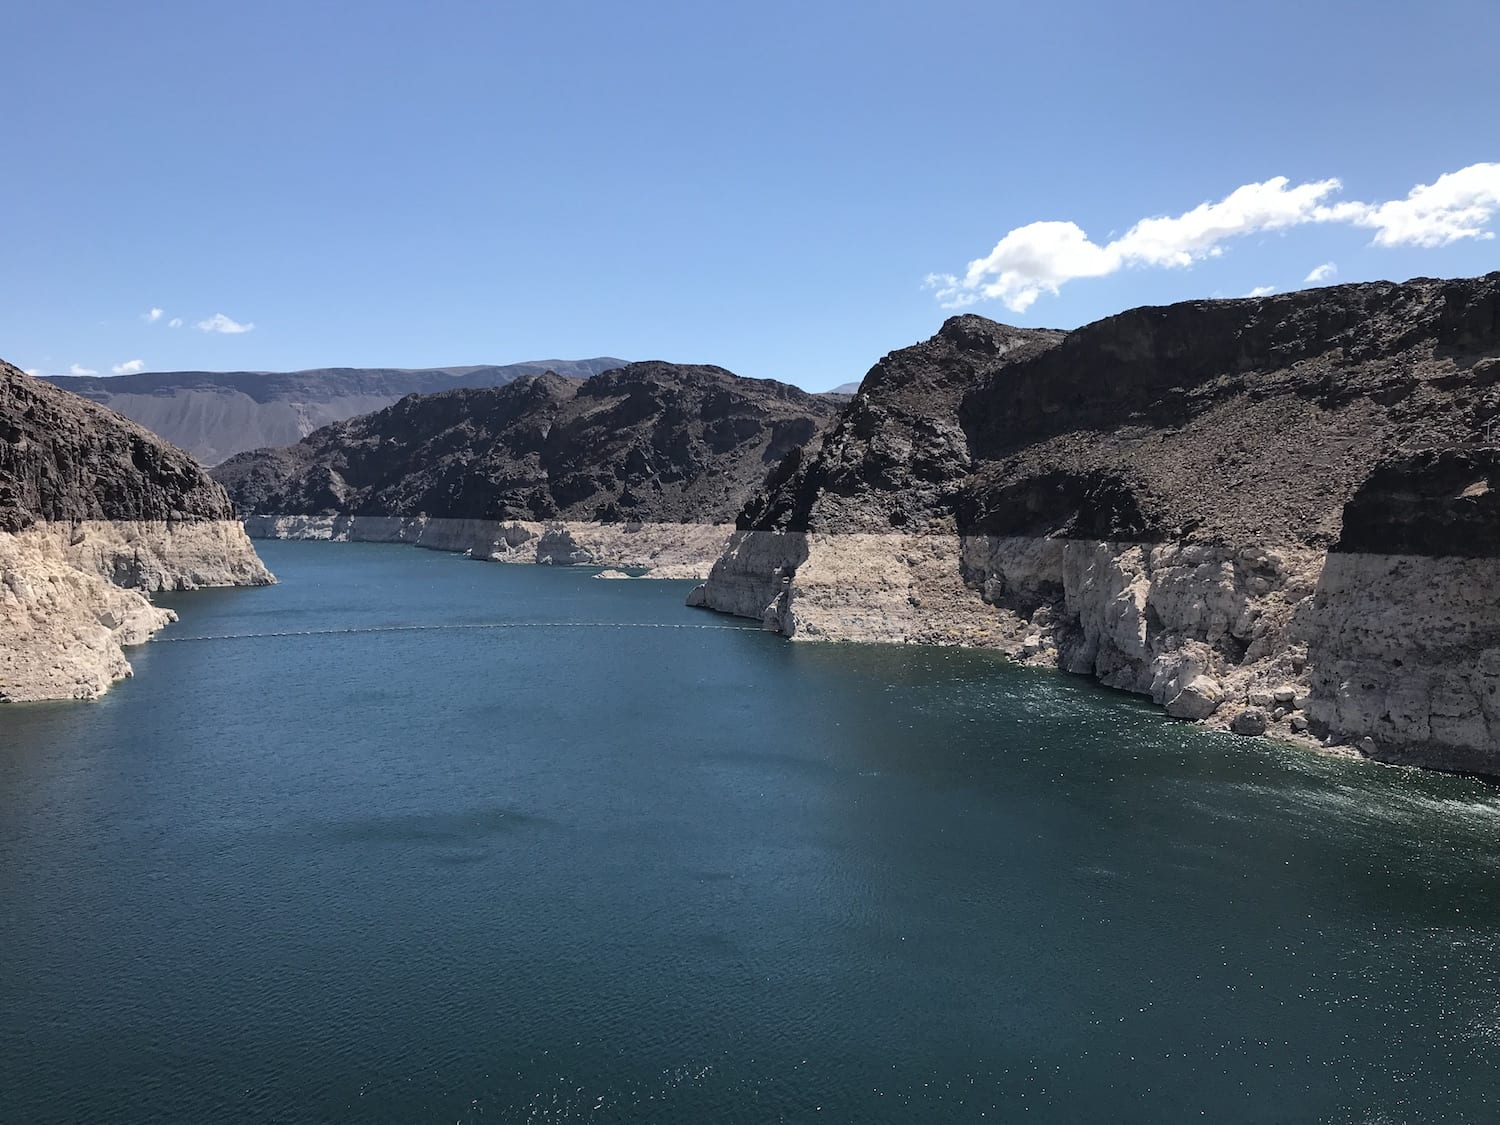 Colorado River from Hoover Dam